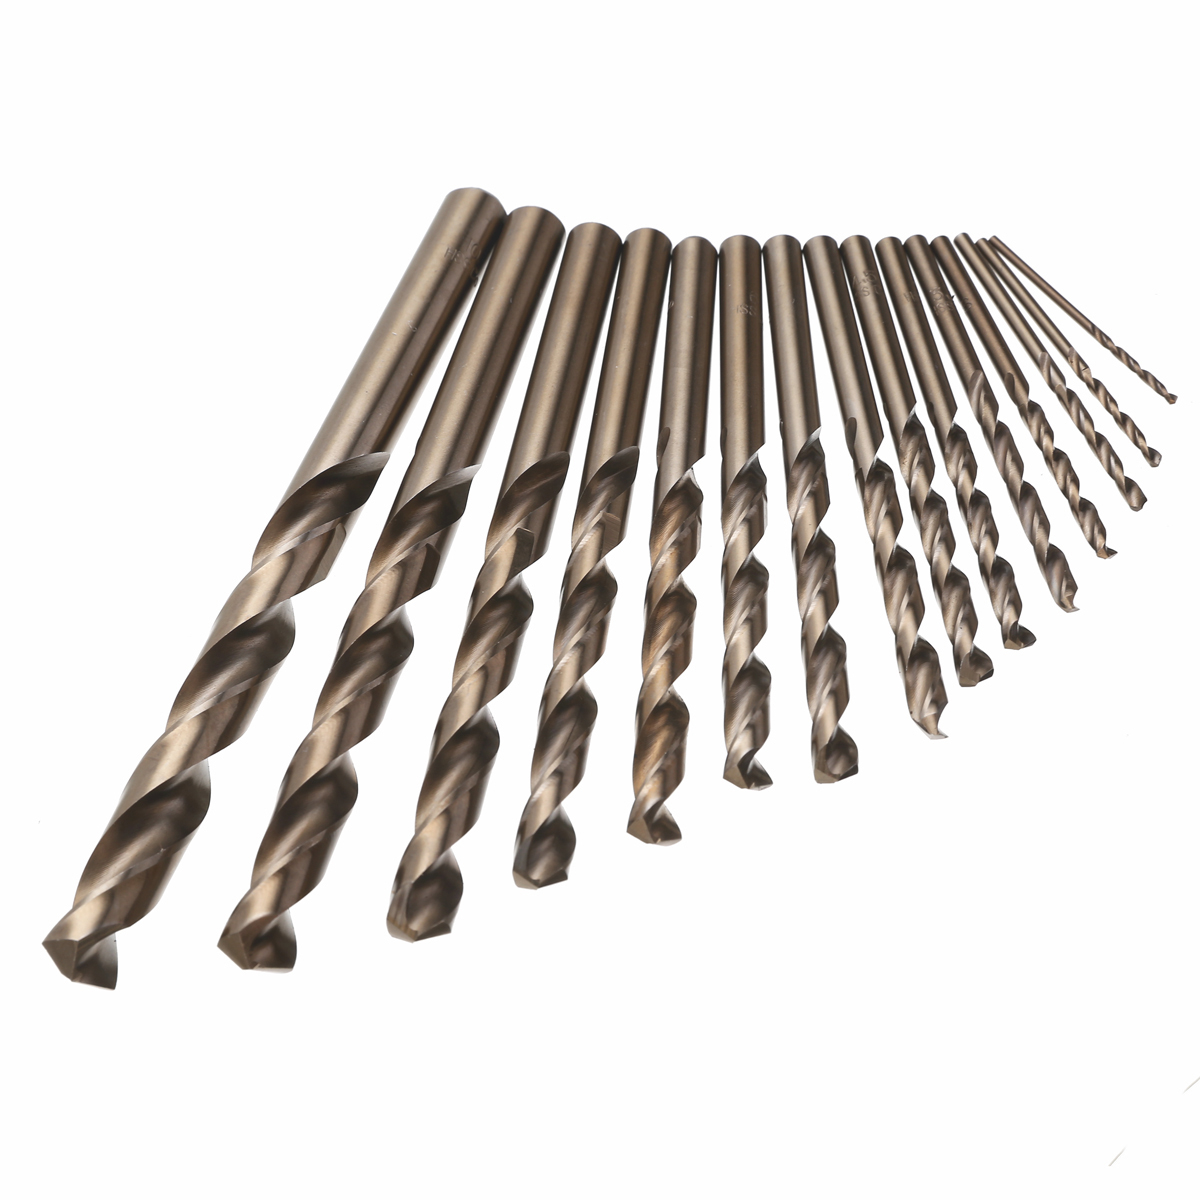 15pcs For Cobalt Twist Drill Bit Metal Cobalt Drill Set for Woodworking Drilling Power Tools Set 1.5-10mm15pcs For Cobalt Twist Drill Bit Metal Cobalt Drill Set for Woodworking Drilling Power Tools Set 1.5-10mm